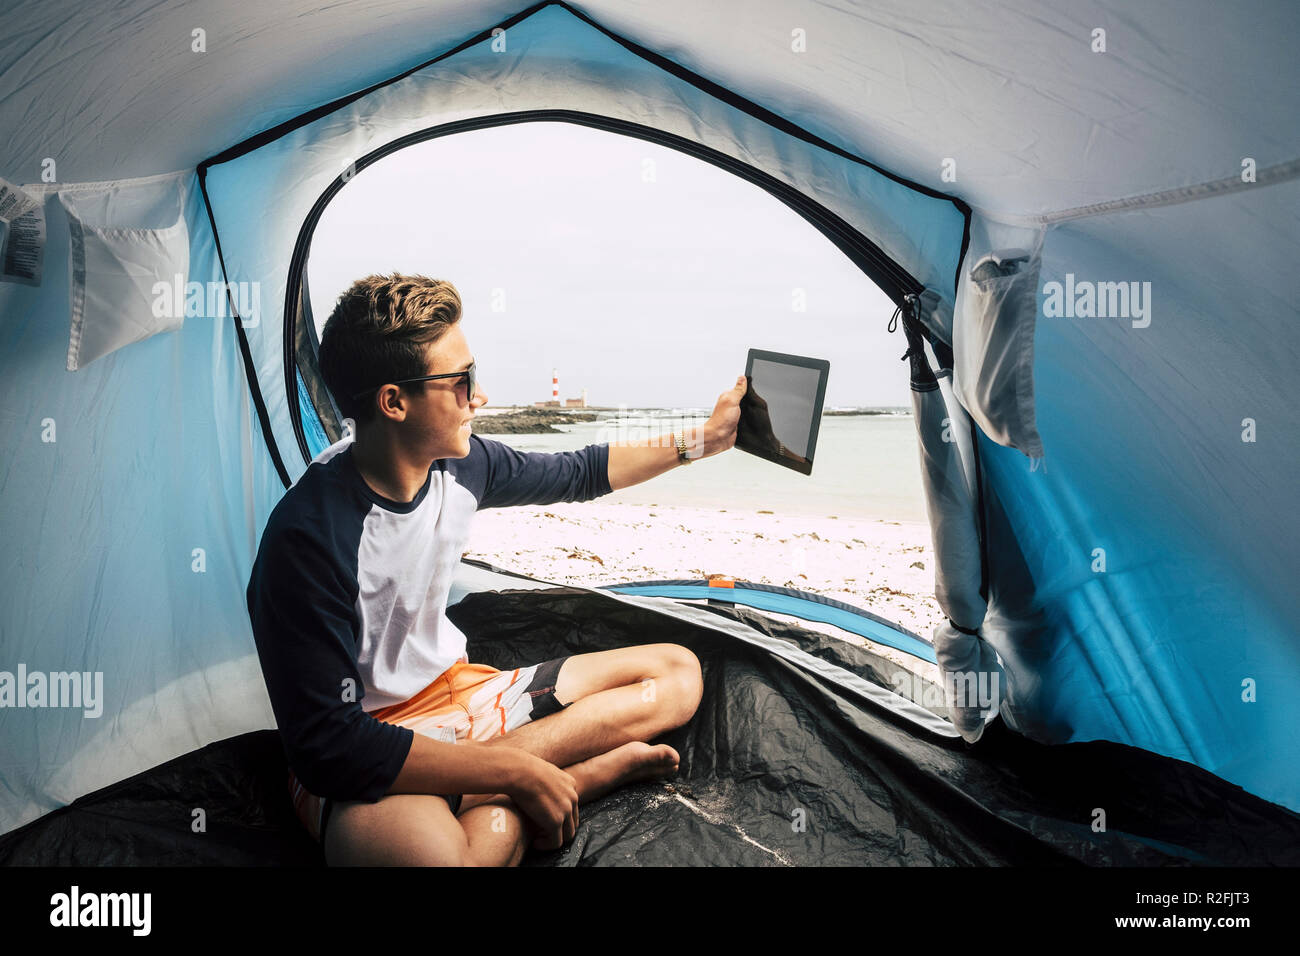 Travel and use technology to communicate for young handsome teenager sitting in side a tent camped on the beach and using a teblaet internet cnnected to send messages and video conference with parents and friends away. alternative vacation concept - Stock Image